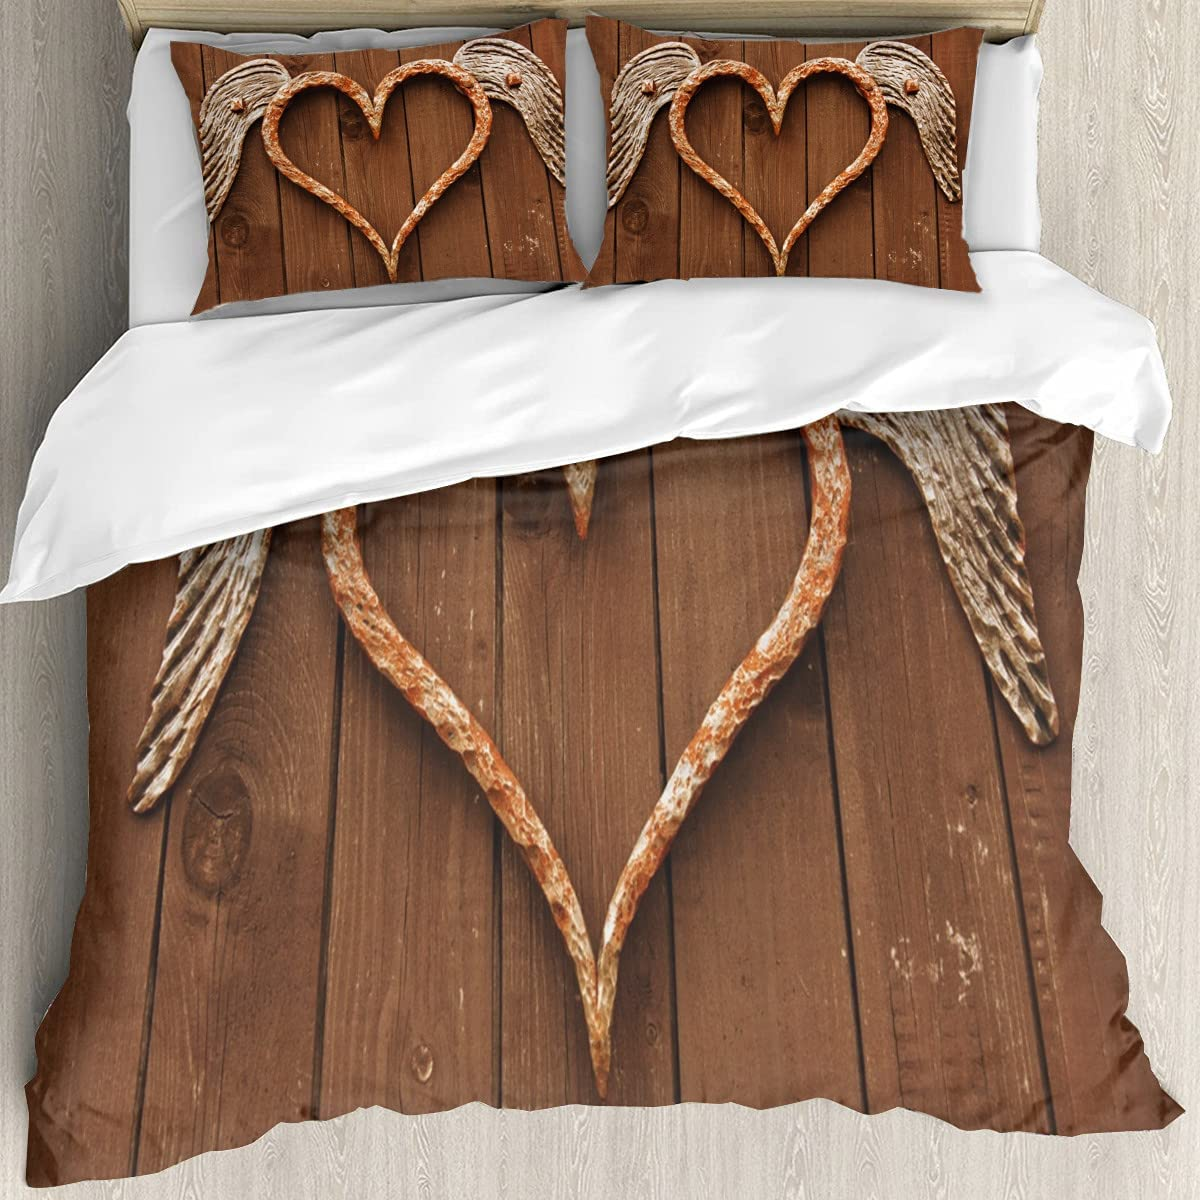 Rusty Heart with Wings 3D Printing Our shop most popular Twin Cover Bedding a Soft Set New York Mall